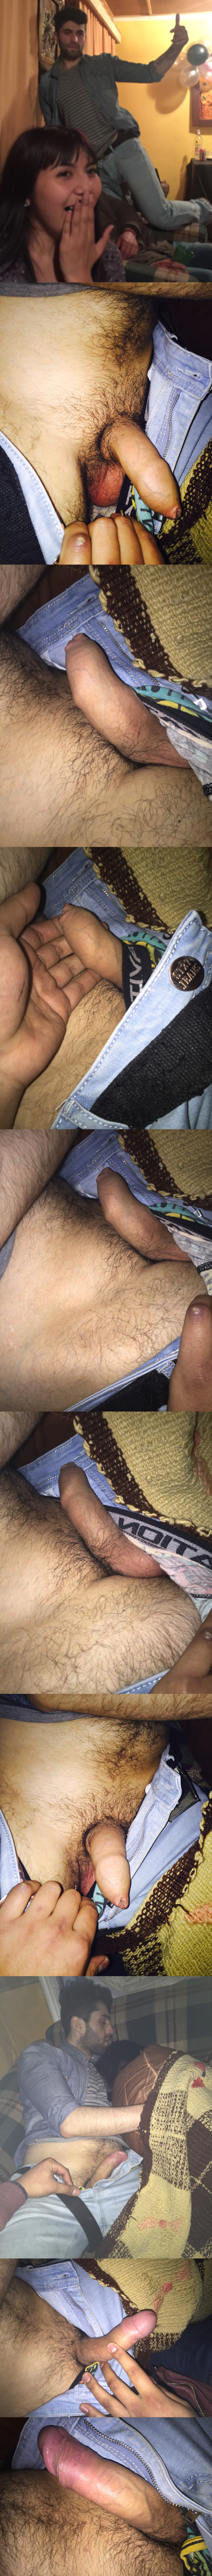 guy-depantsed-while-sleeping-hard-dick